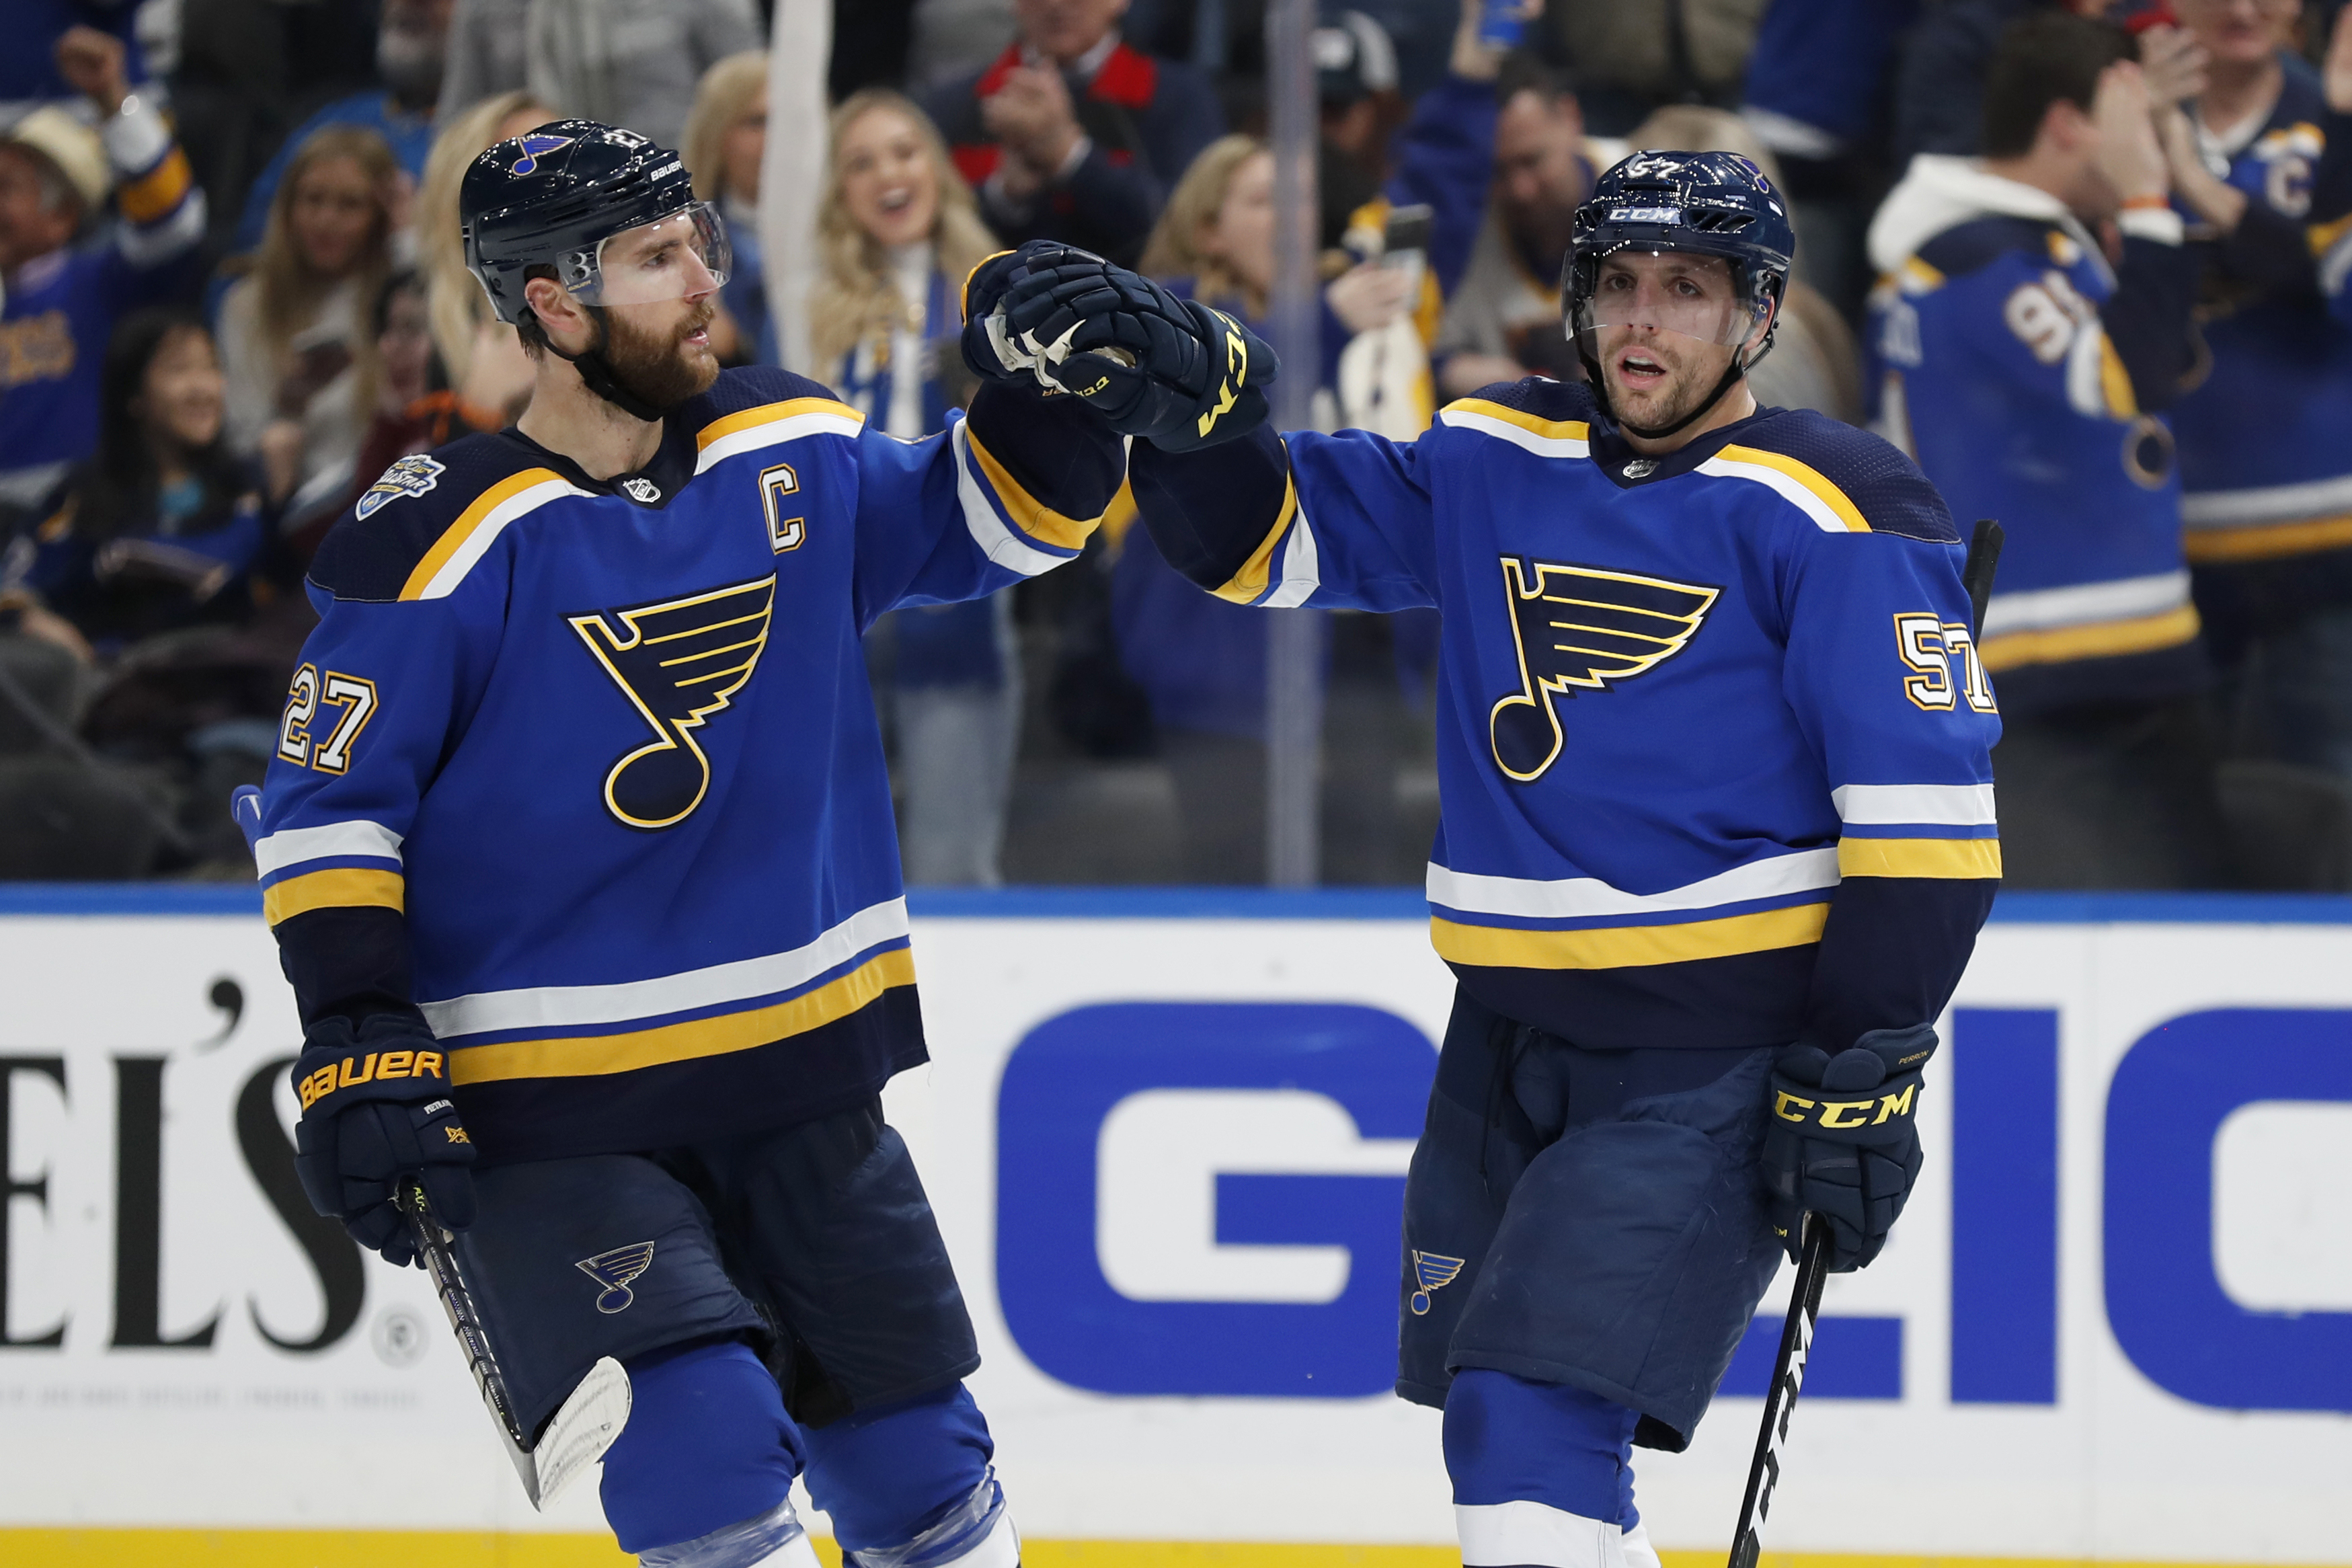 Perron scores hat trick in Blues' 5-2 win over Avalanche